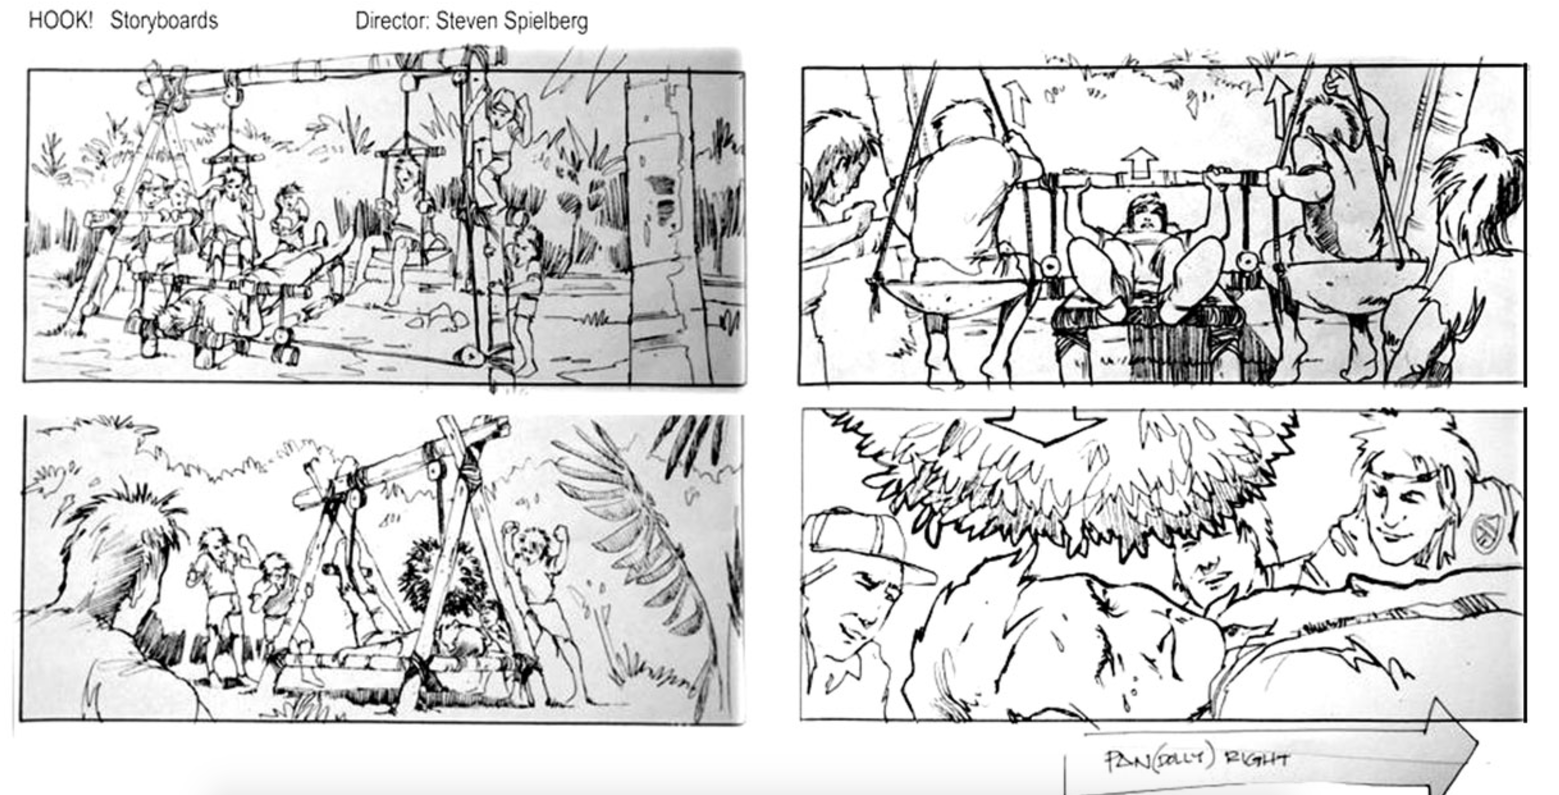 Edward Eyth Design sketching Steven Spielberg HOOK Storyboards